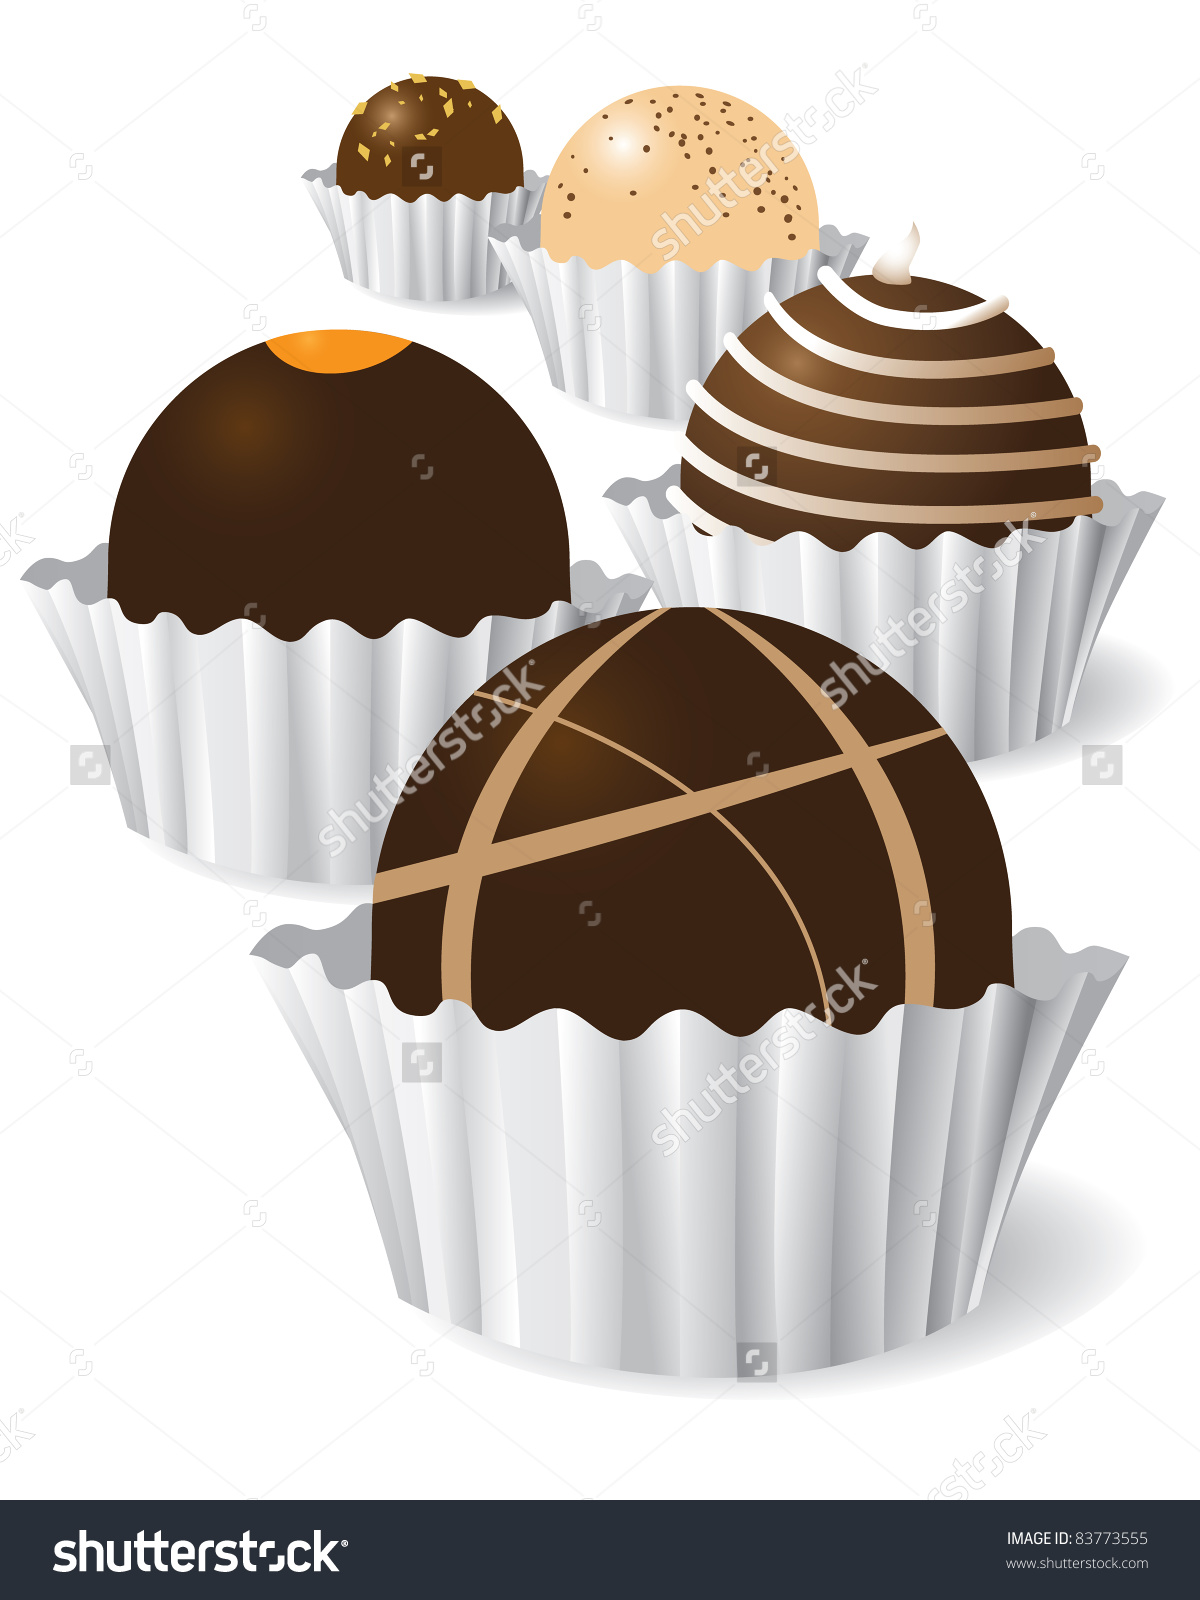 Chocolate truffles clipart #1